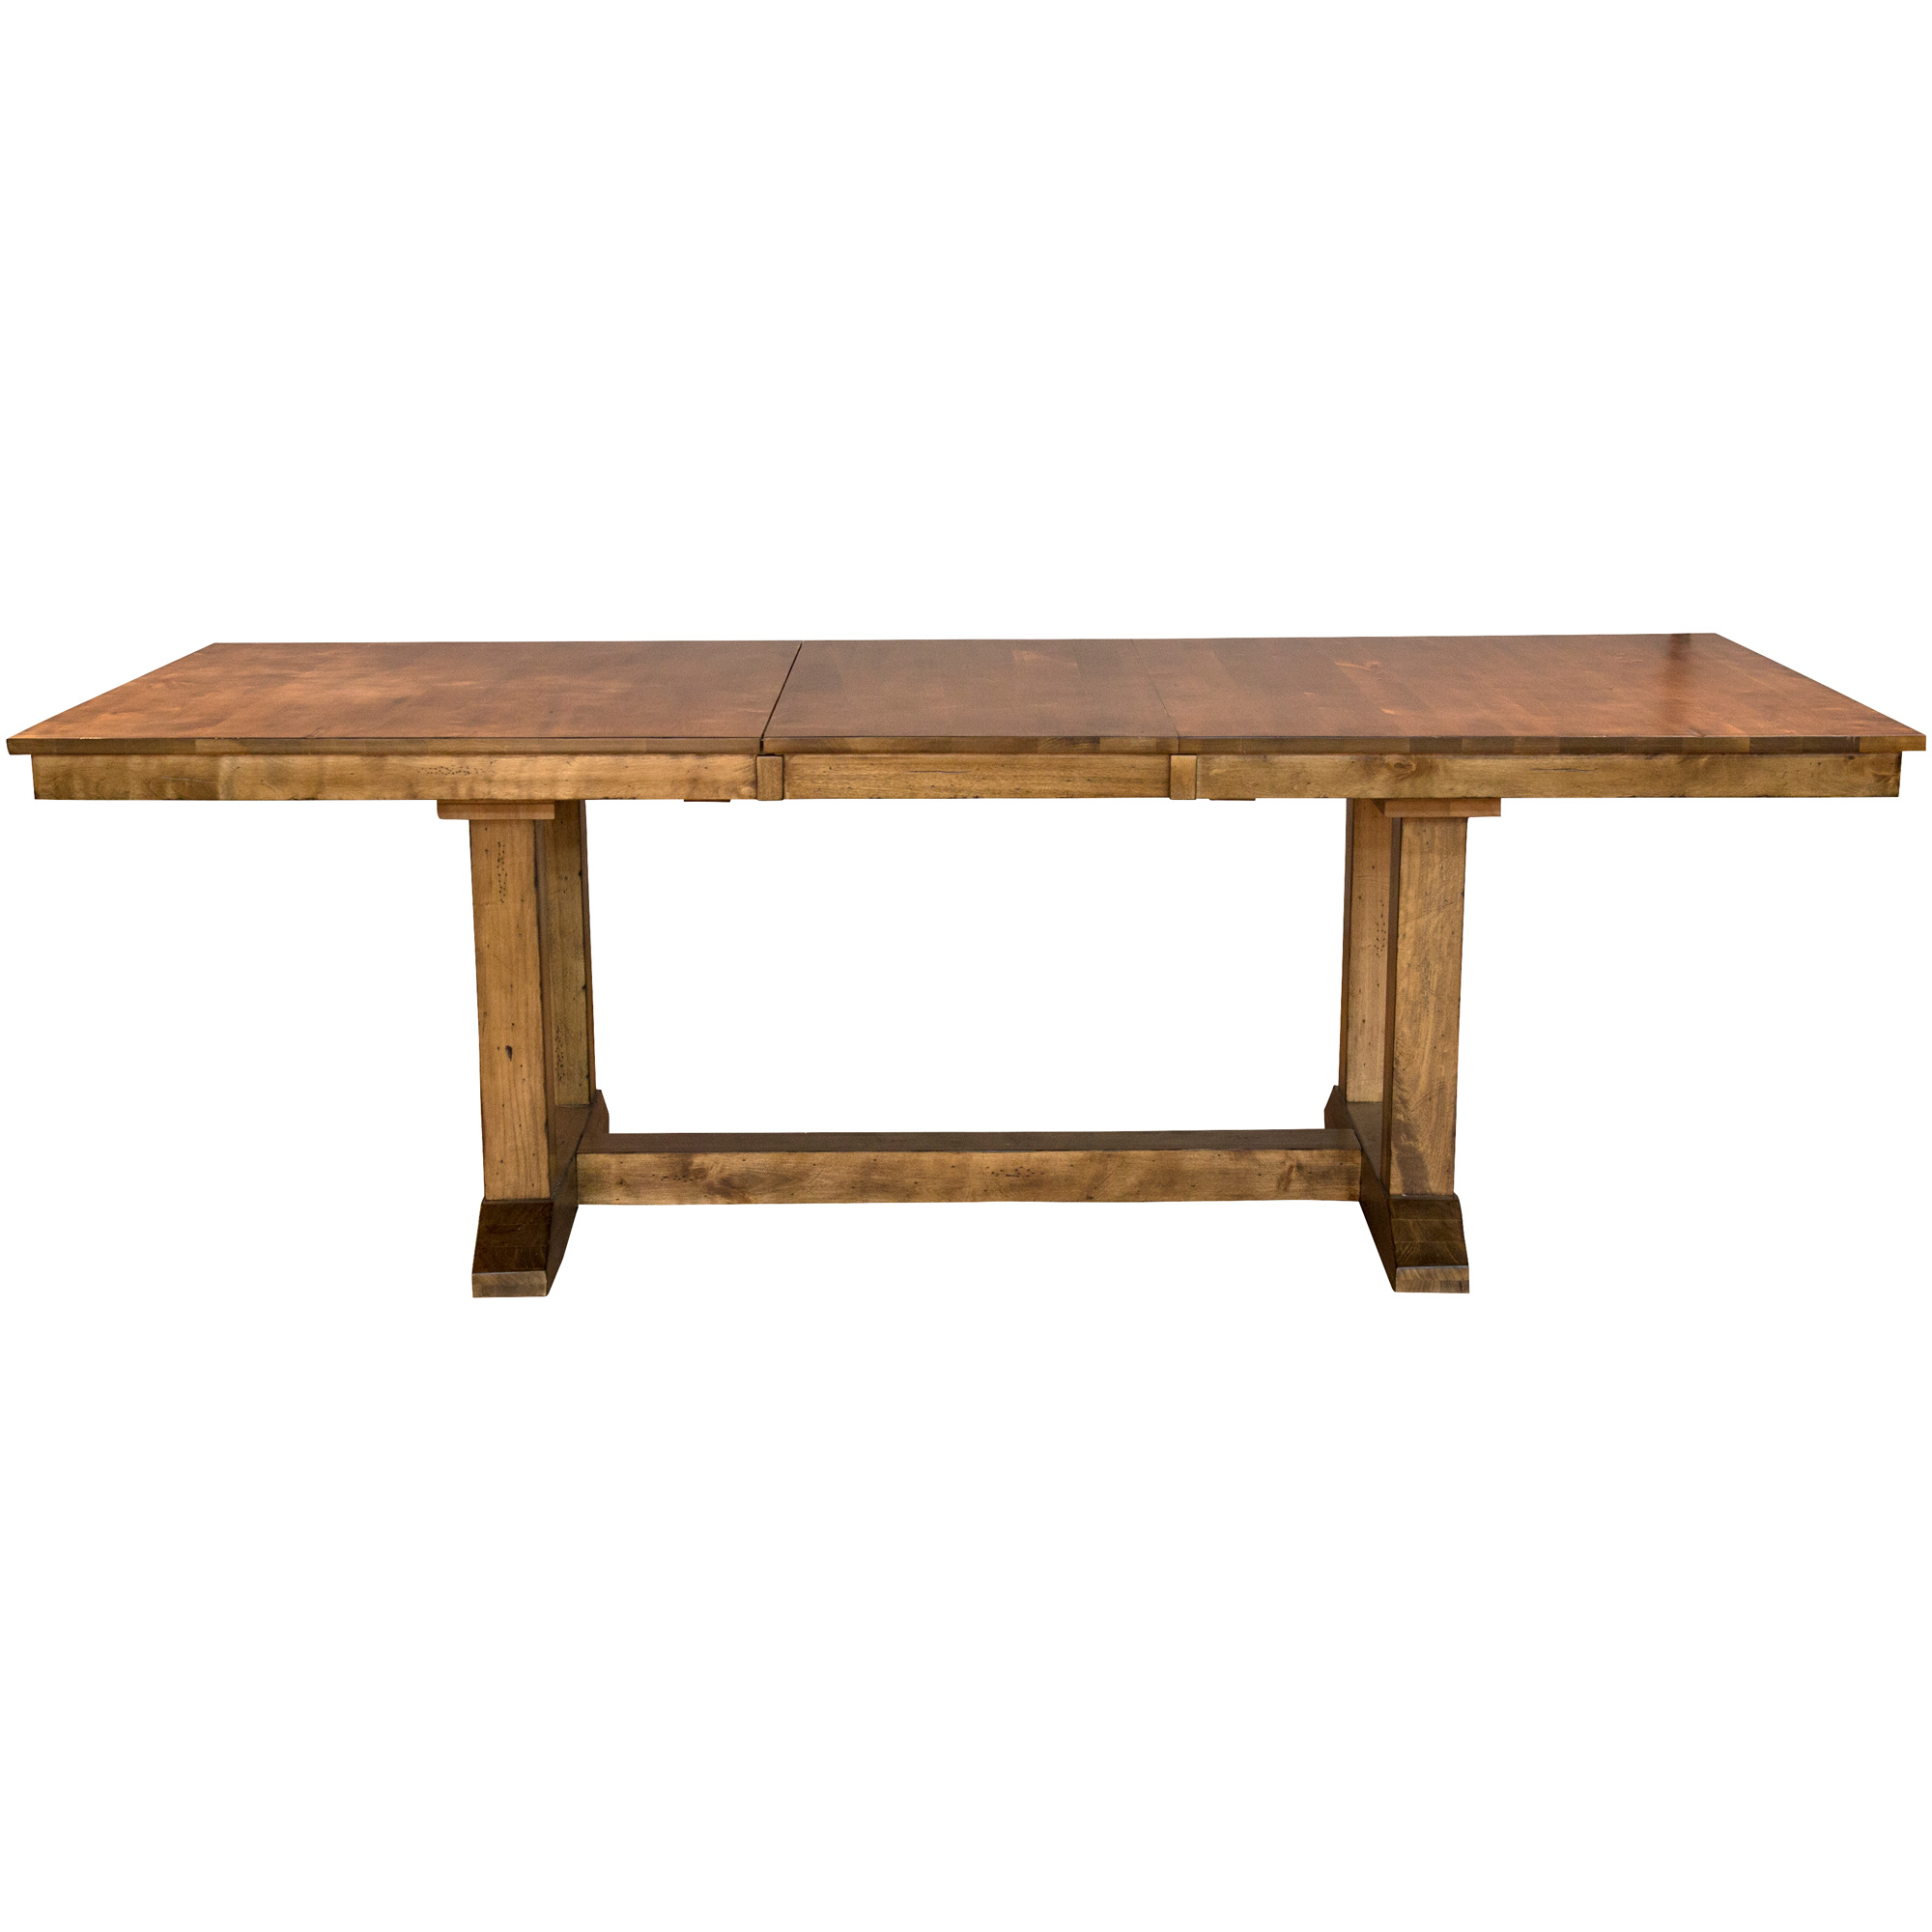 America | Bennett Smokey Quartz Trestle Dining Table